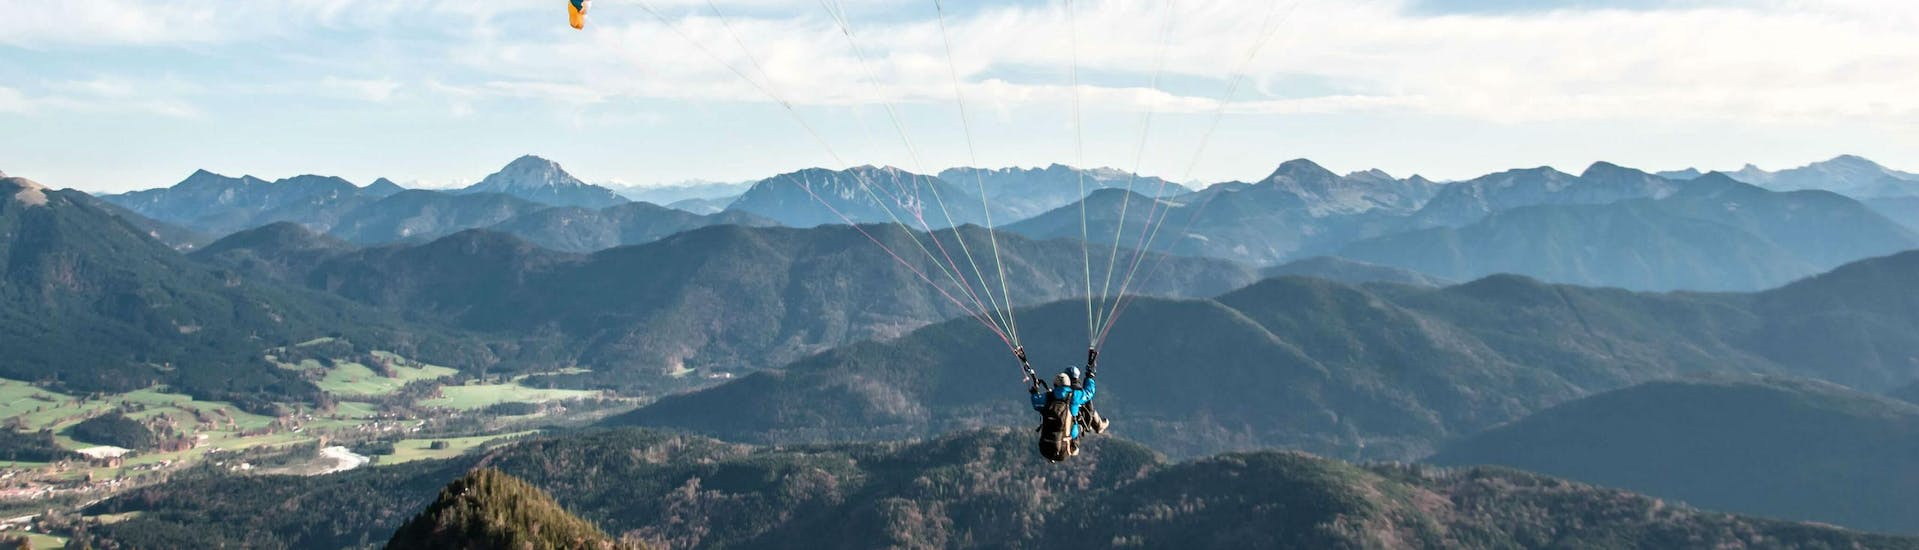 tandem-paragliding-in-wallberg-and-brauneck-free-style-acro-paraworth-hero